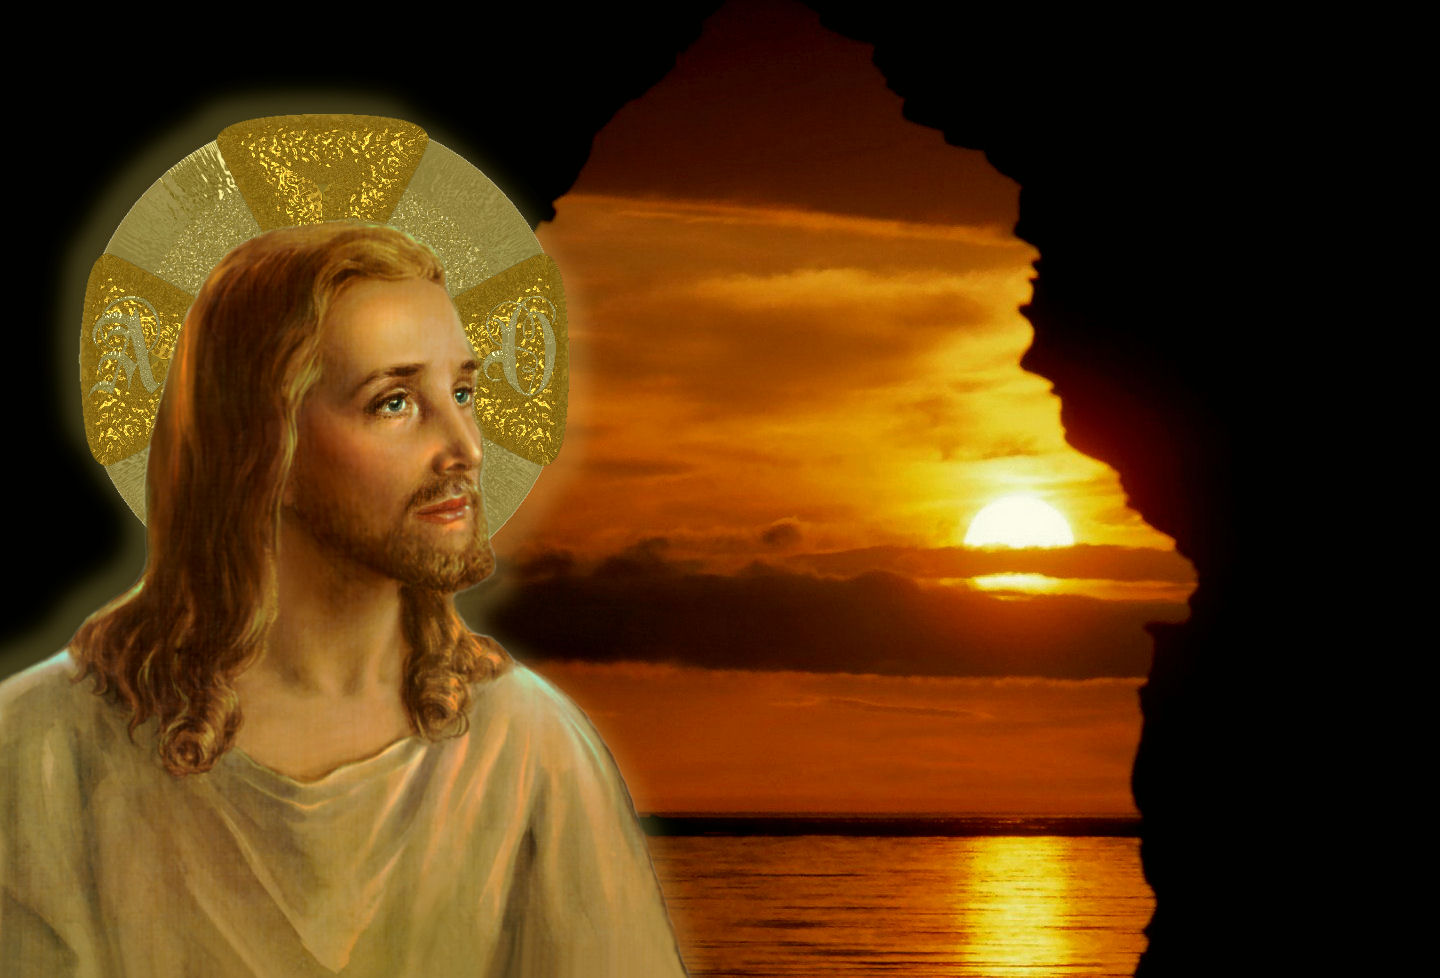 THE SOCIAL RIGHTS OF OUR DIVINE LORD JESUS CHRIST KING